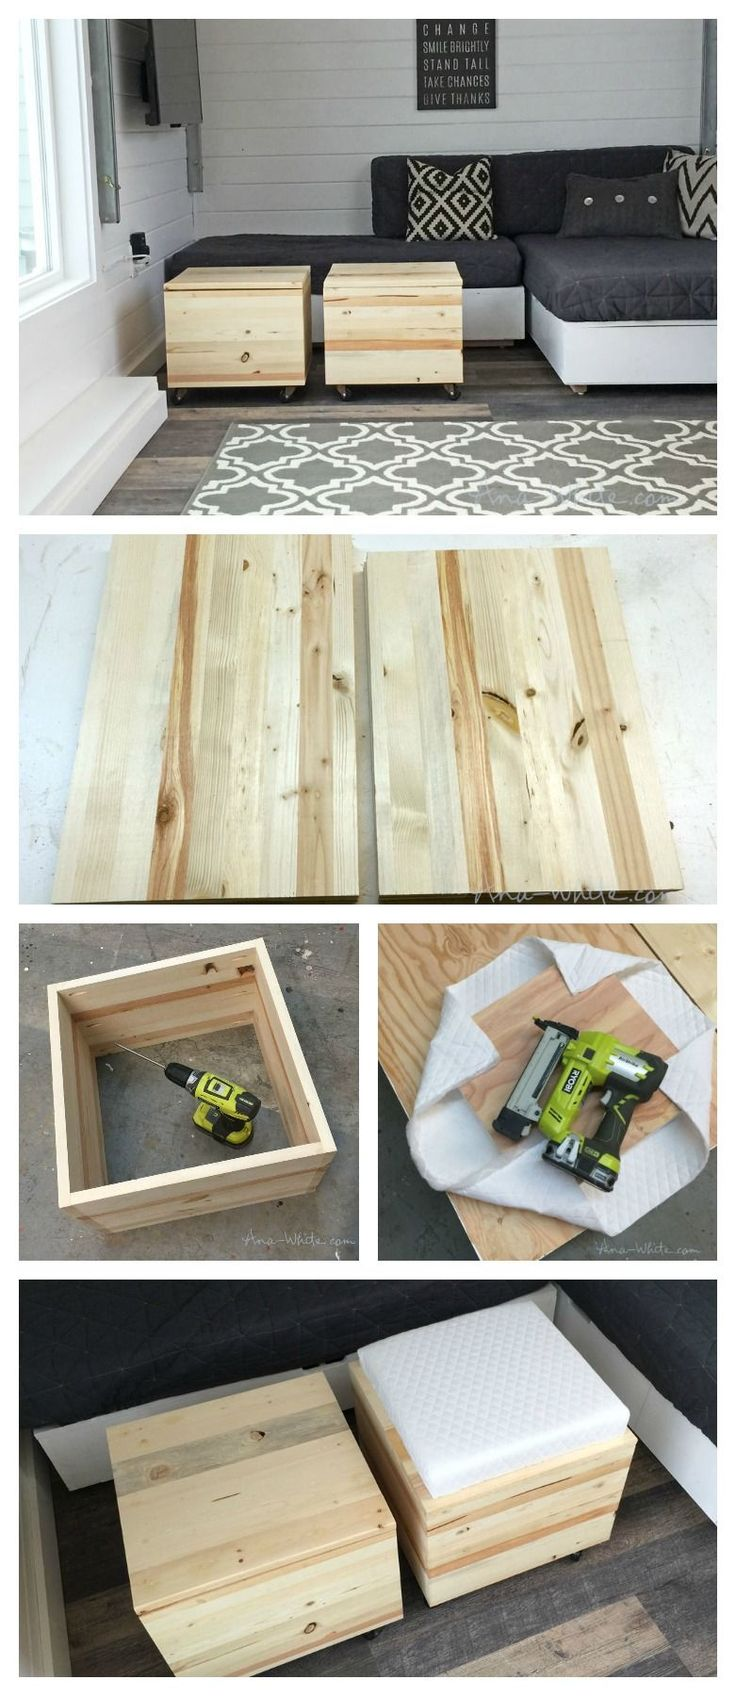 EASY!!!! Ana White | Wood Storage Stools - DIY Projects